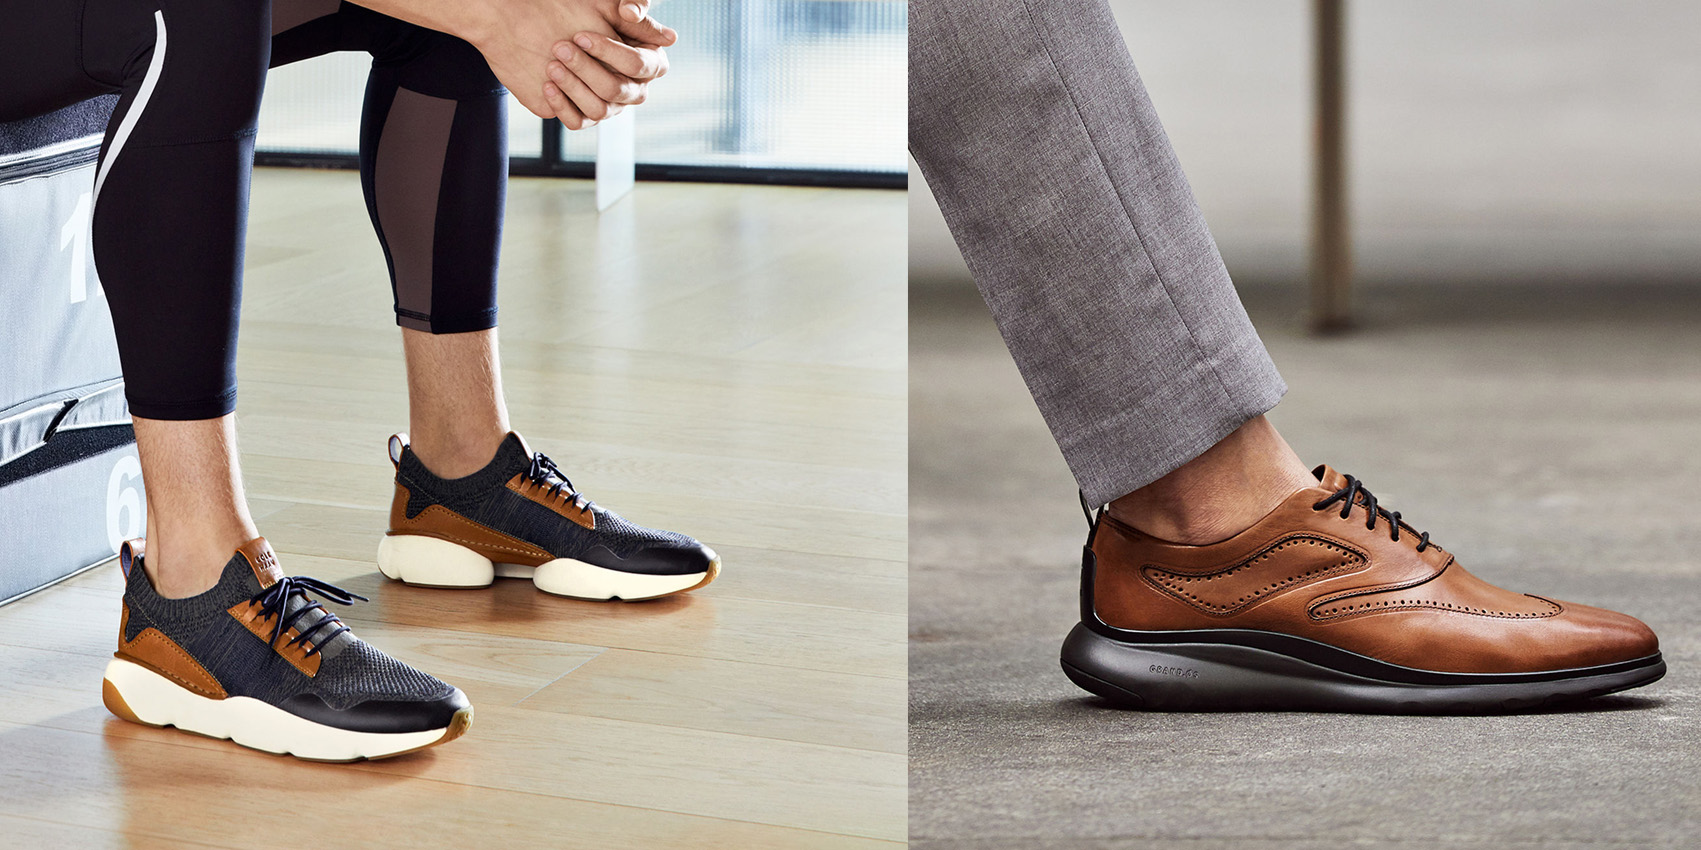 Cole Haan's The Semi-Annual Event is live with an extra 30% off sitewide + free shipping